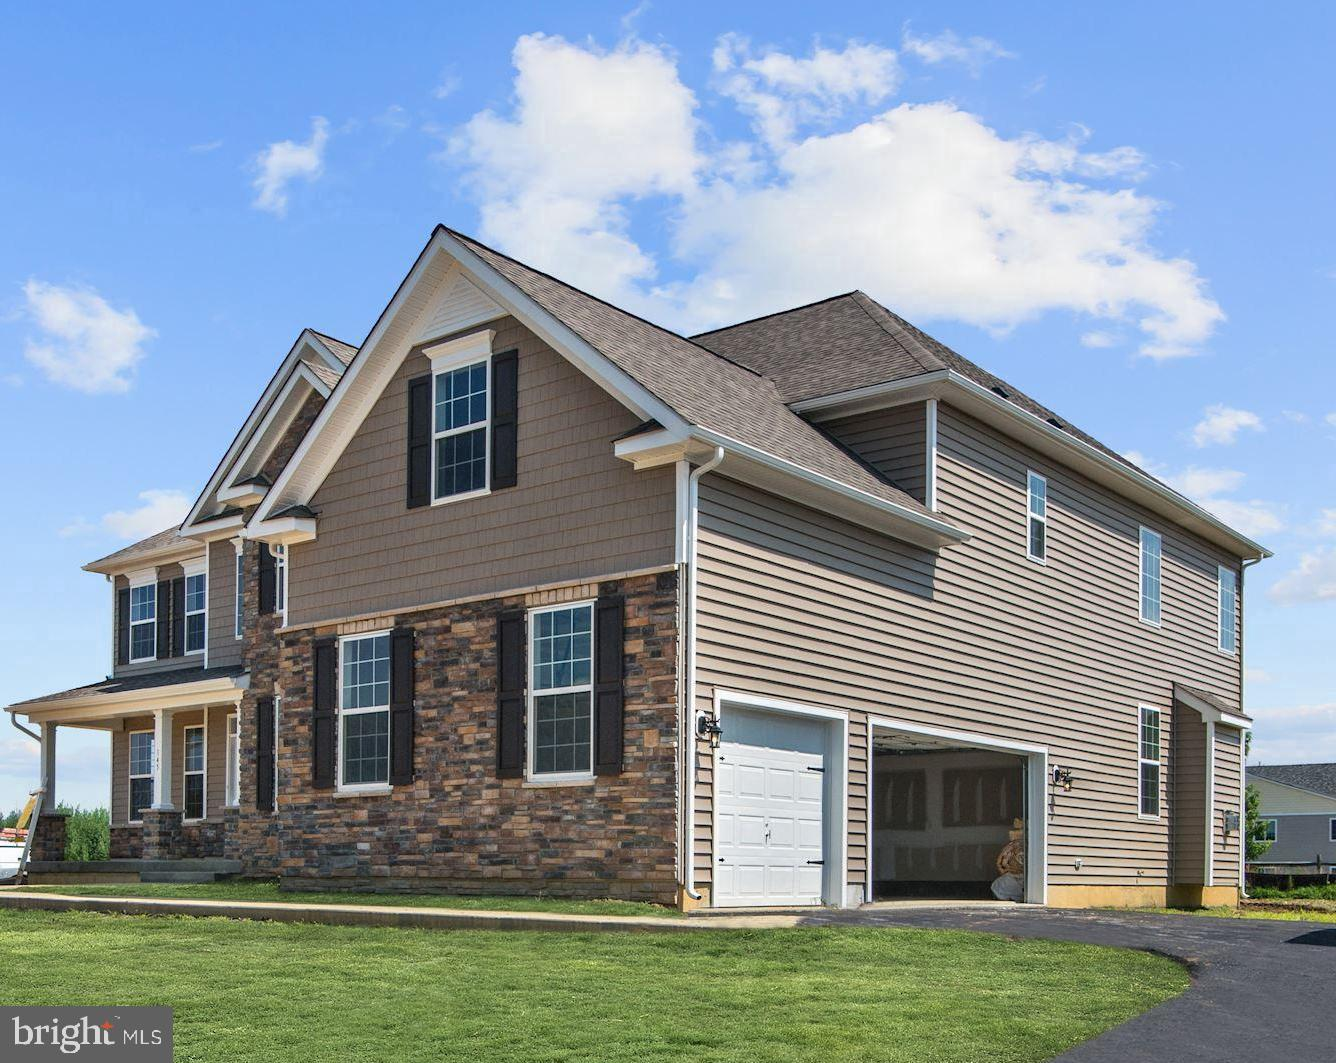 145 ROSEUM WAY, MULLICA HILL, NJ 08062